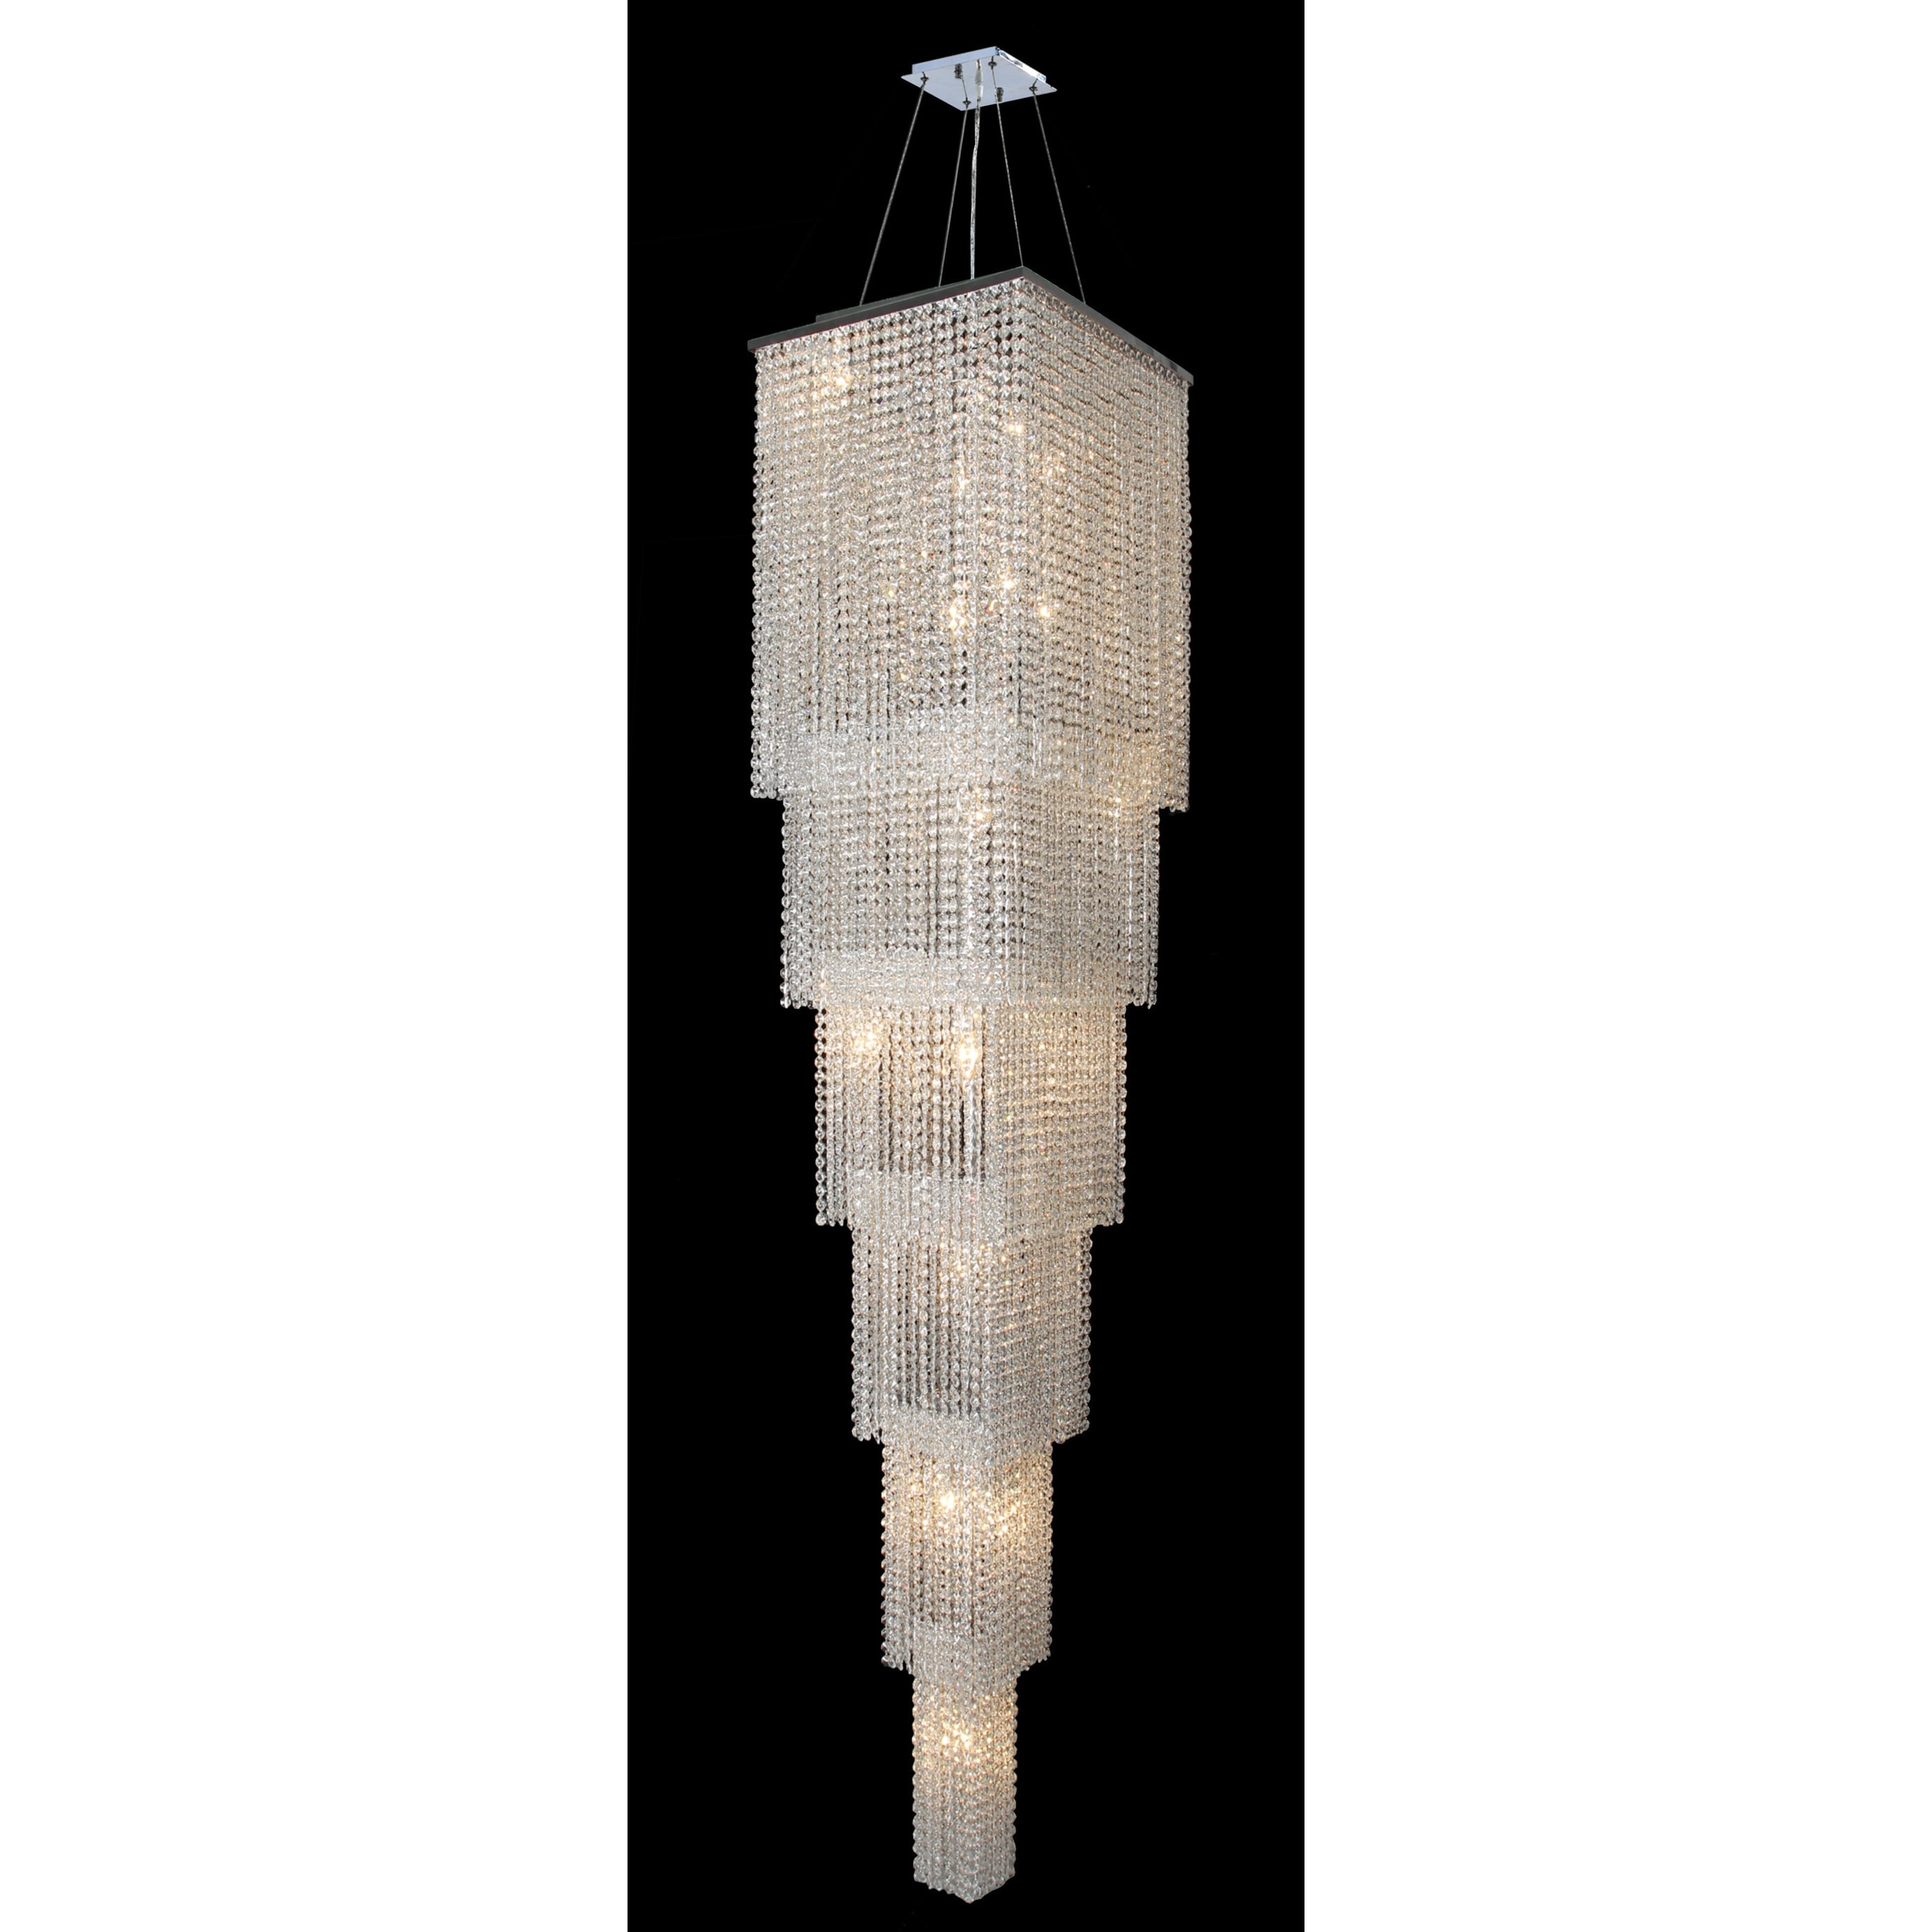 Spectacular 21 light chrome finish and cascading crystal string spectacular 21 light chrome finish and cascading crystal string chandelier six 6 tier 16 square x 8 free shipping today overstock 17839121 arubaitofo Gallery